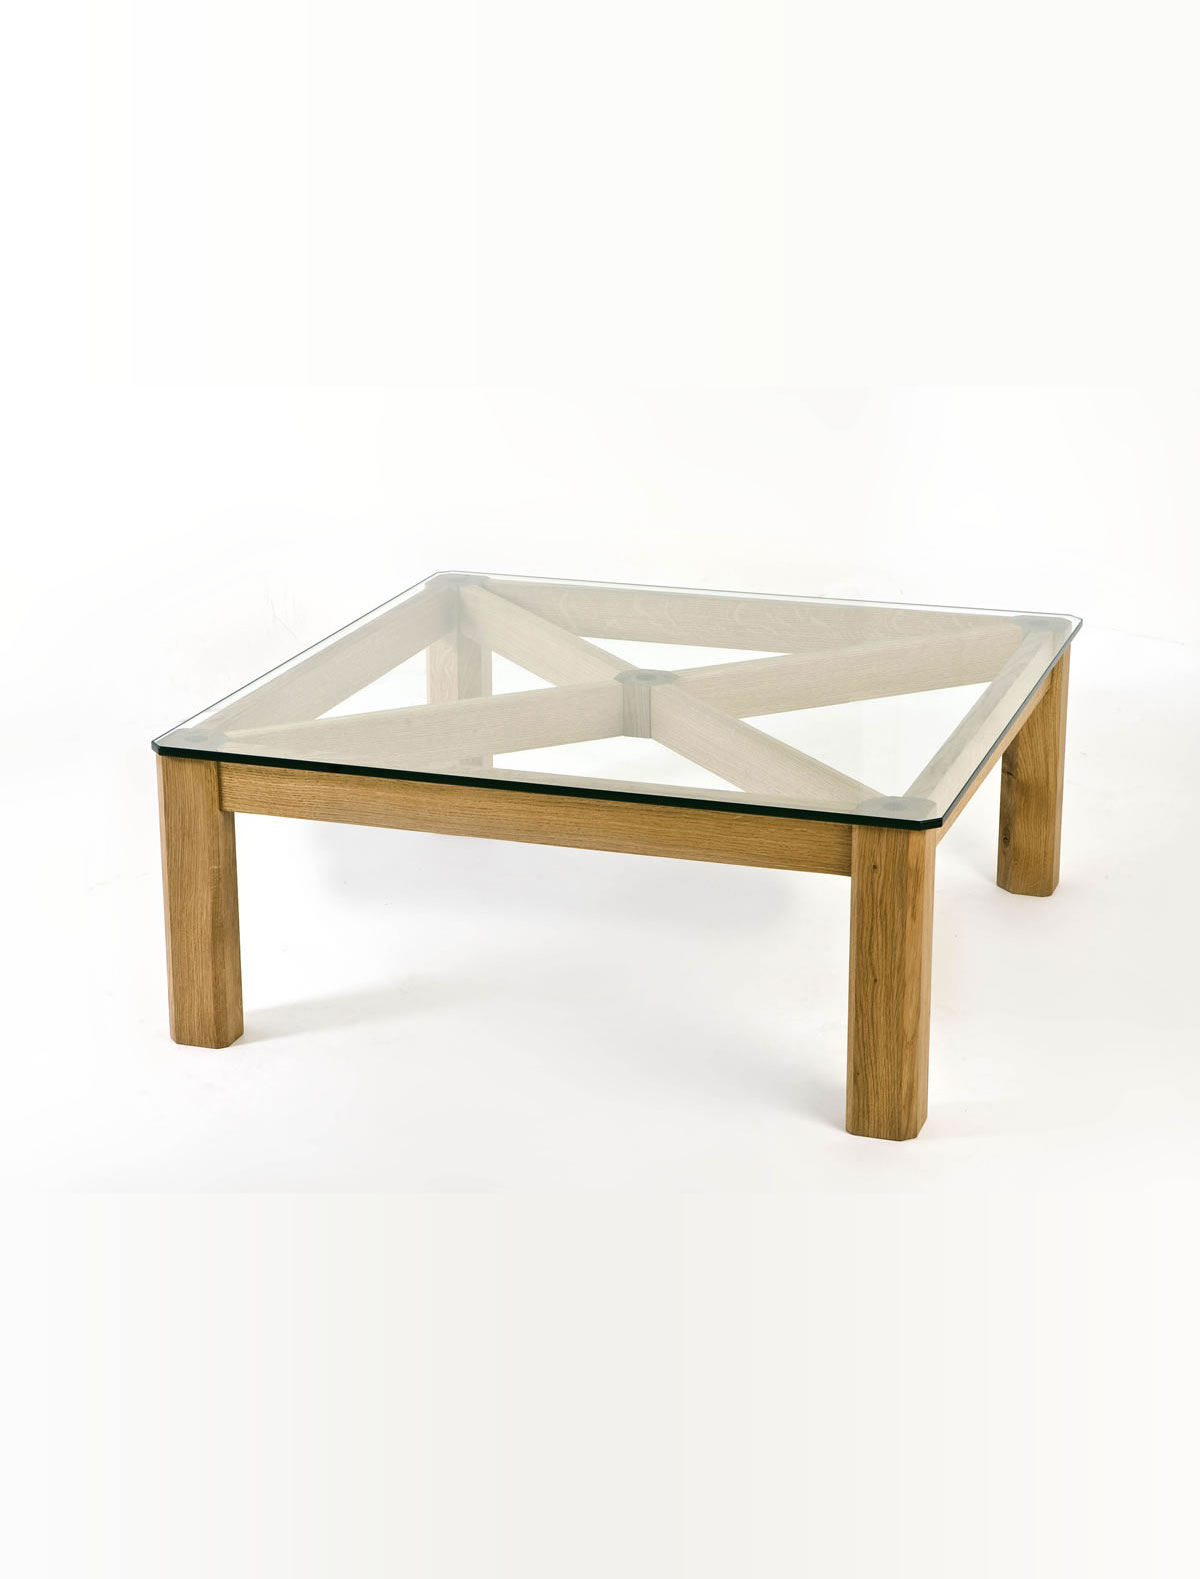 Glass top coffee tables colin norgate Bespoke glass furniture